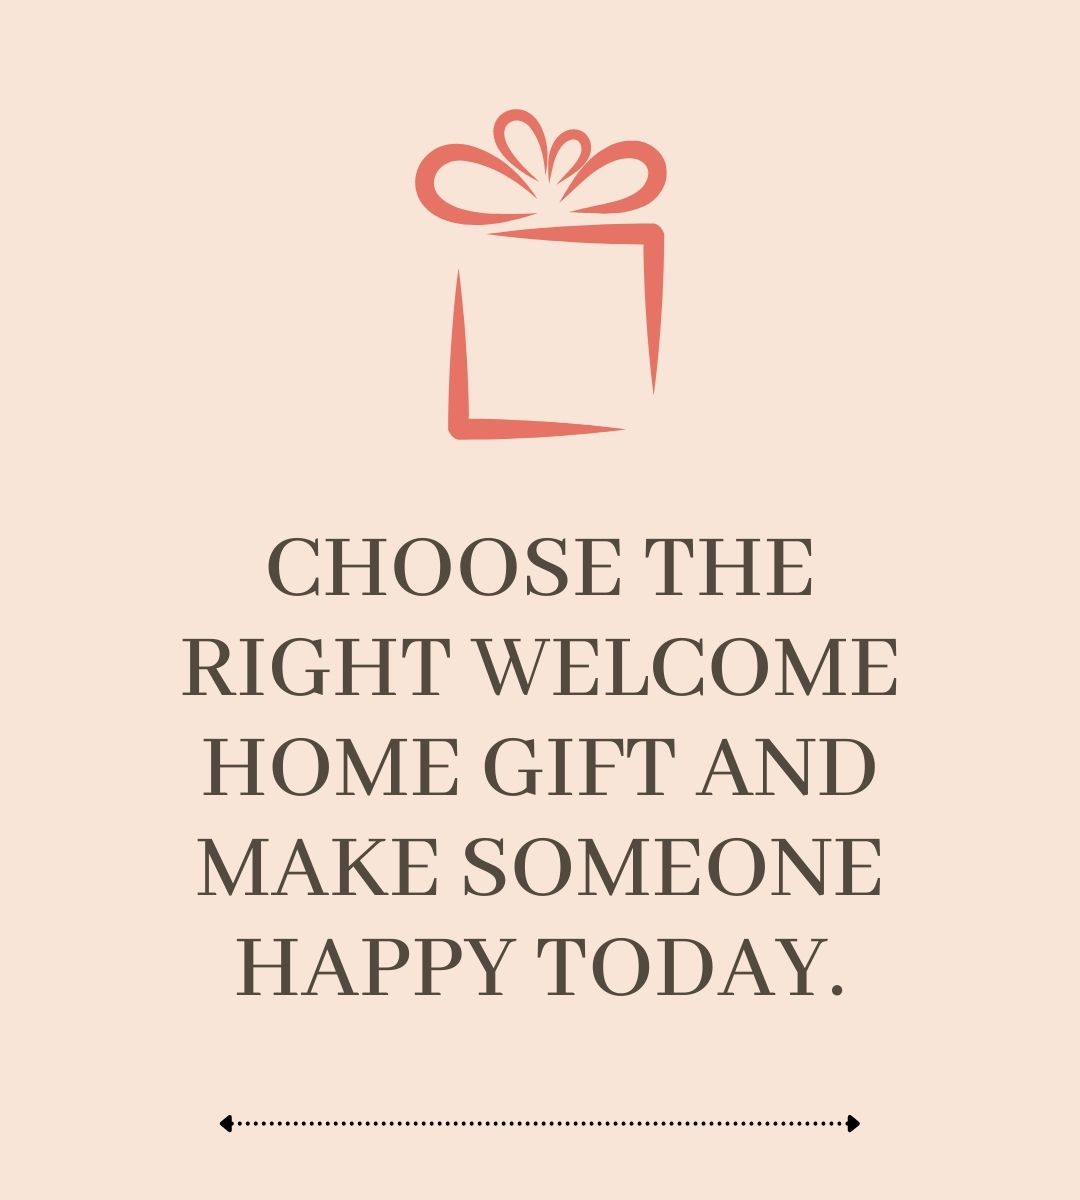 CHOOSE THE RIGHT WELCOME HOME GIFT AND MAKE SOMEONE HAPPY TODAY.